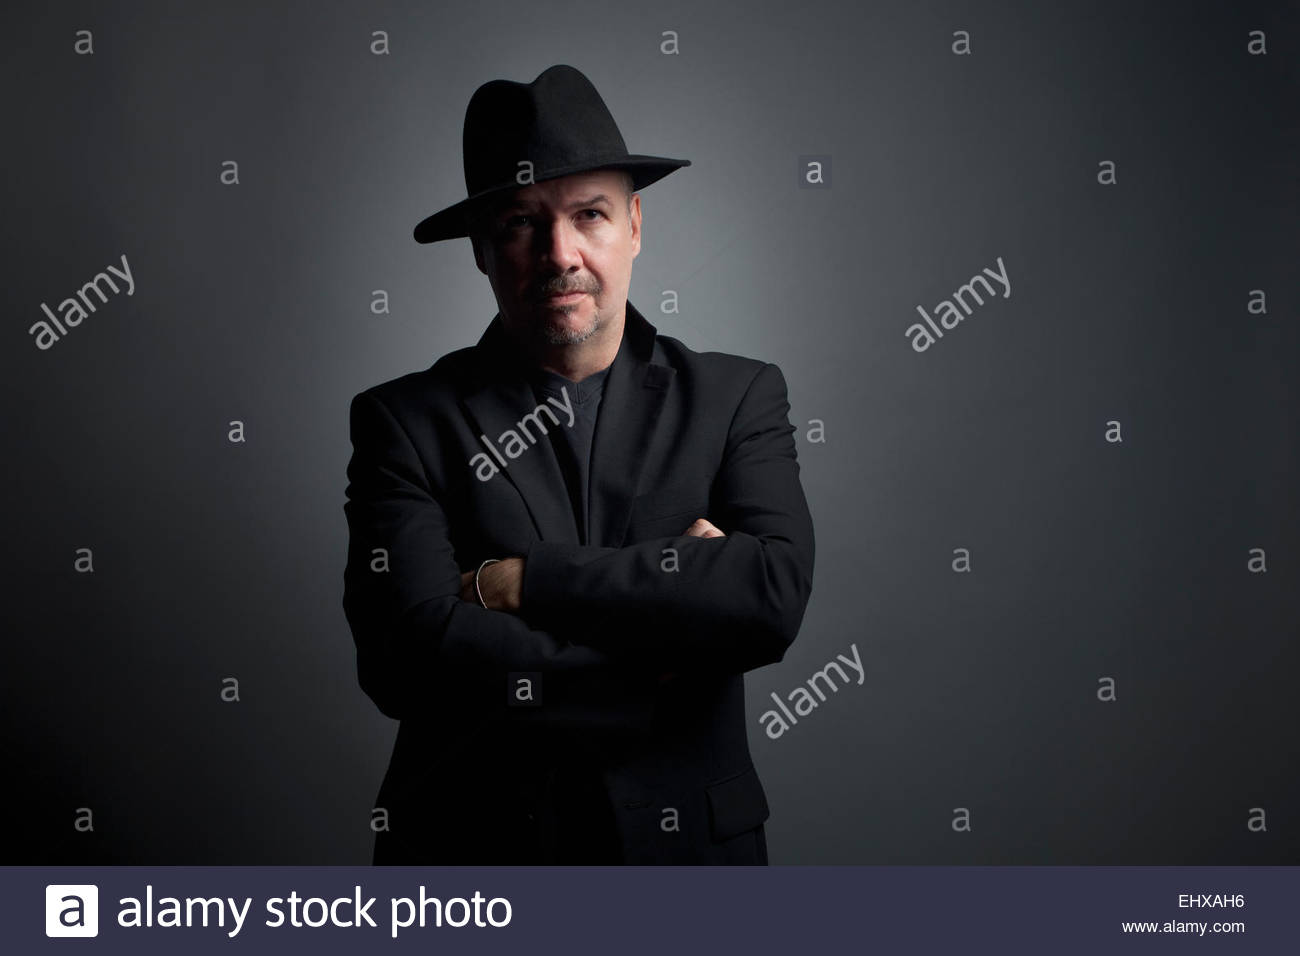 828b489fd5c7a Man portrait wearing fedora hat middle aged 40 - Stock Image